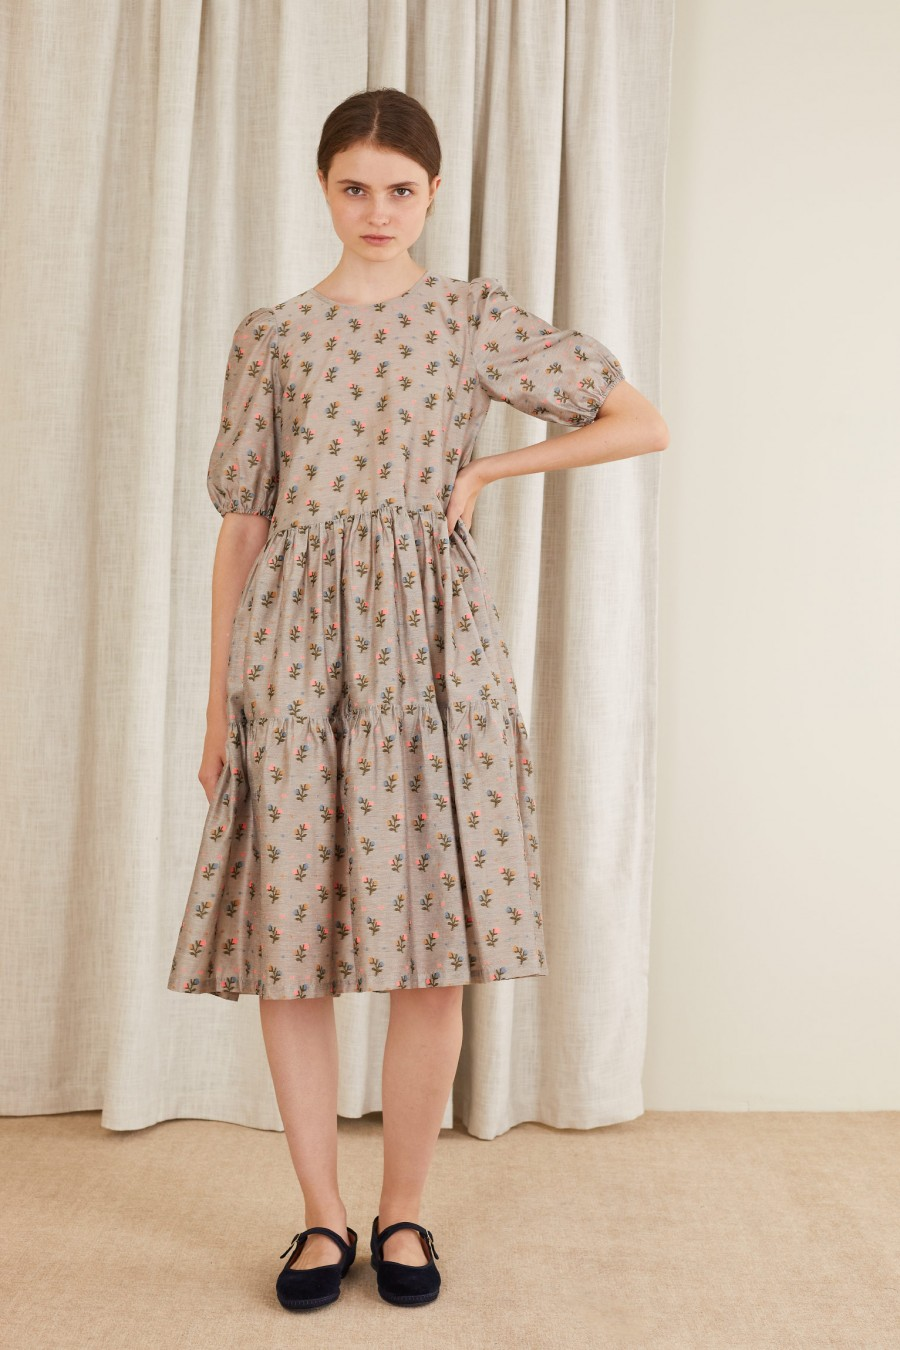 dres with jacquard flowers on a grey background